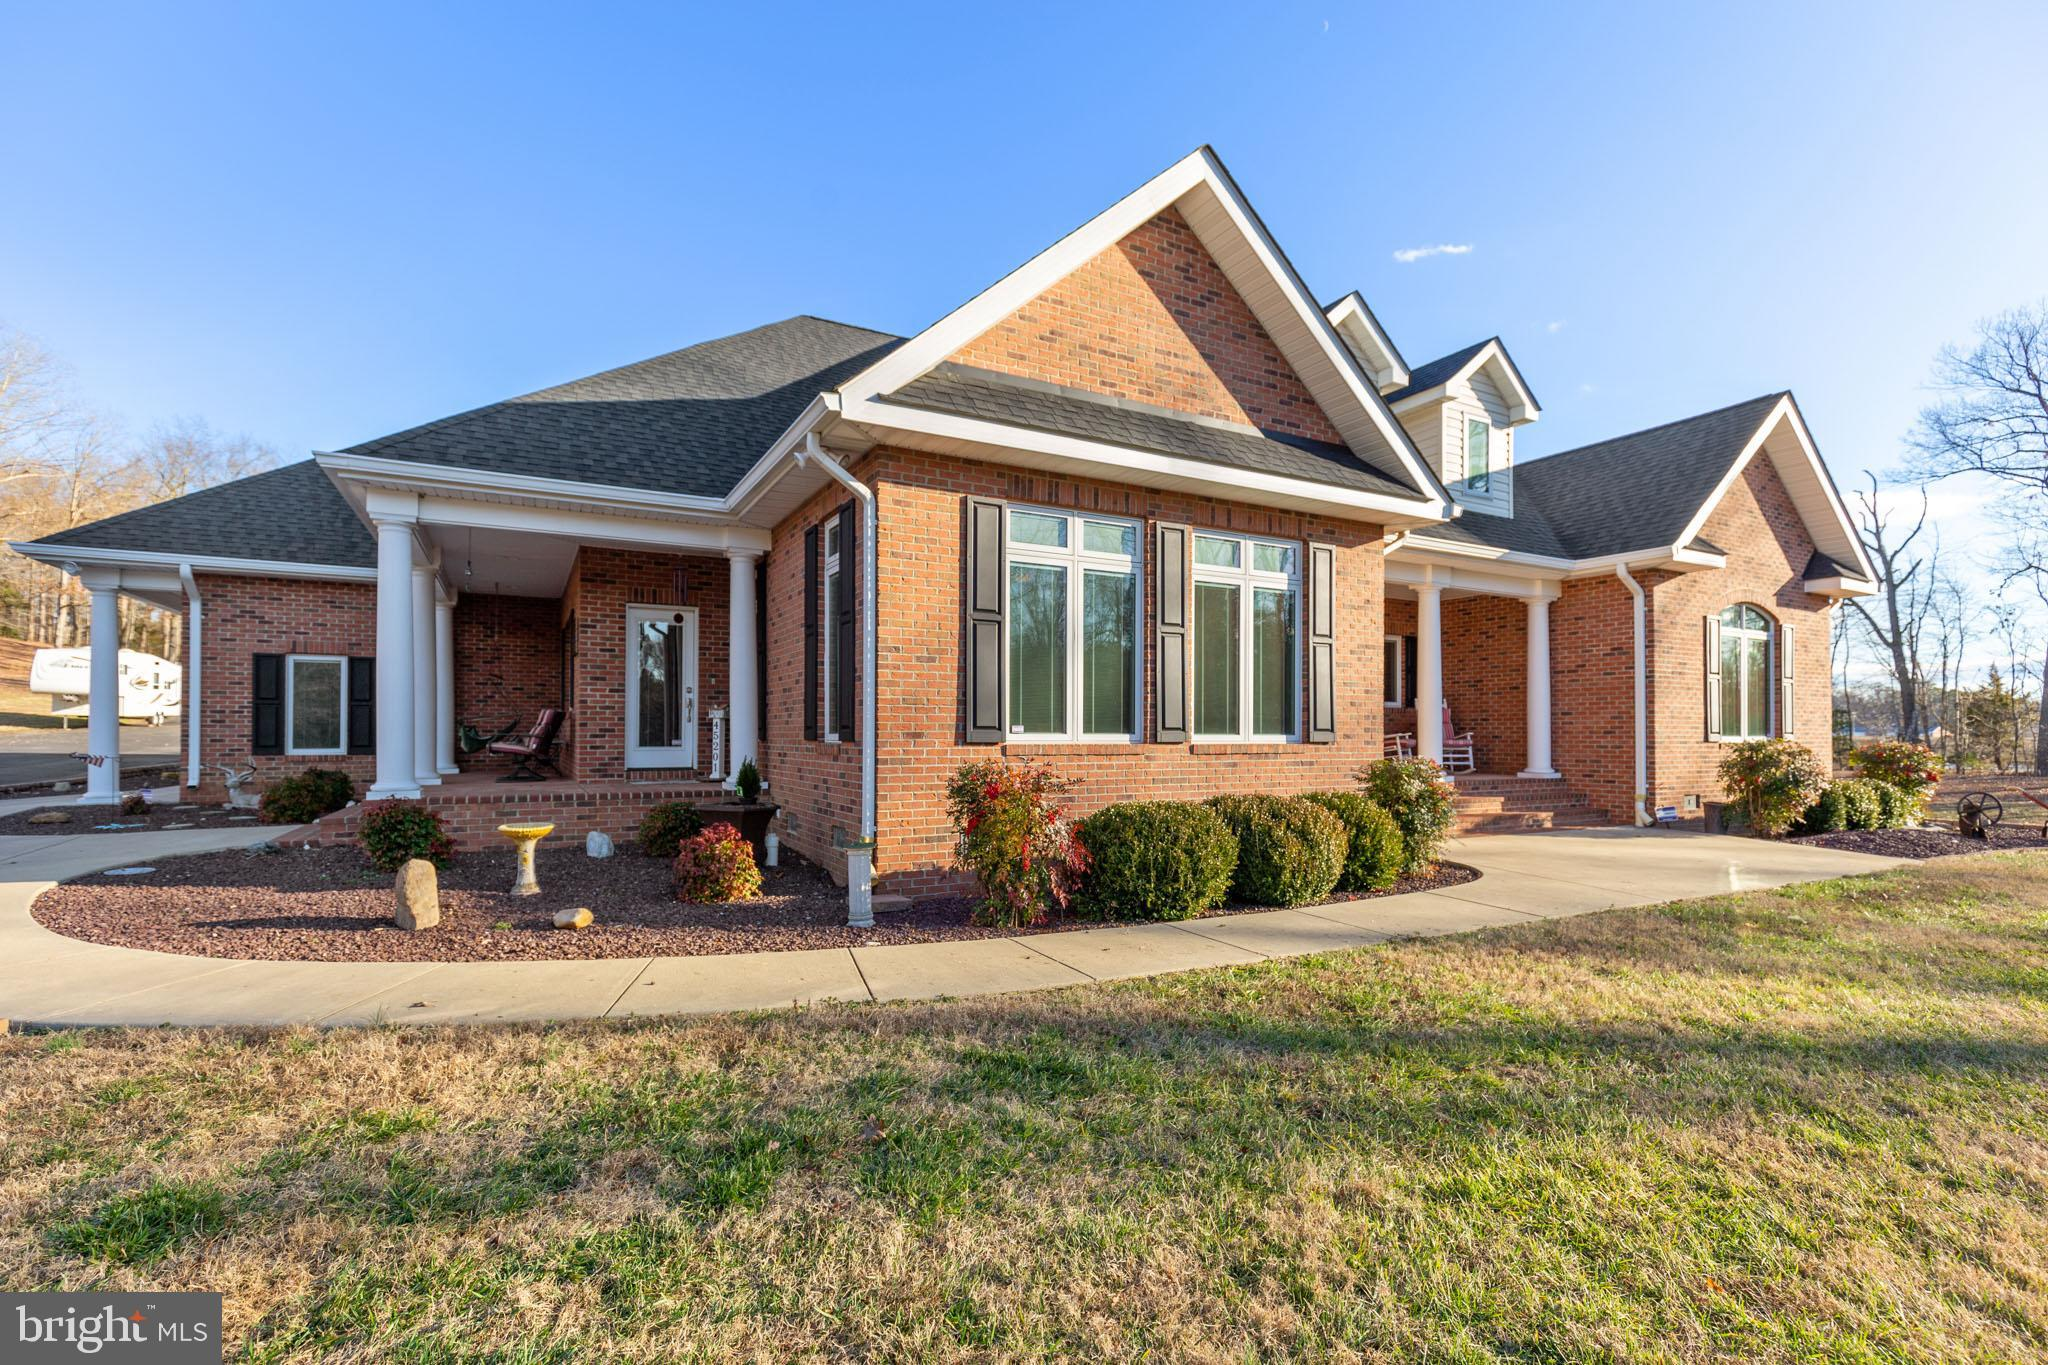 45201 SHETLAND ACRES DRIVE, VALLEY LEE, MD 20692